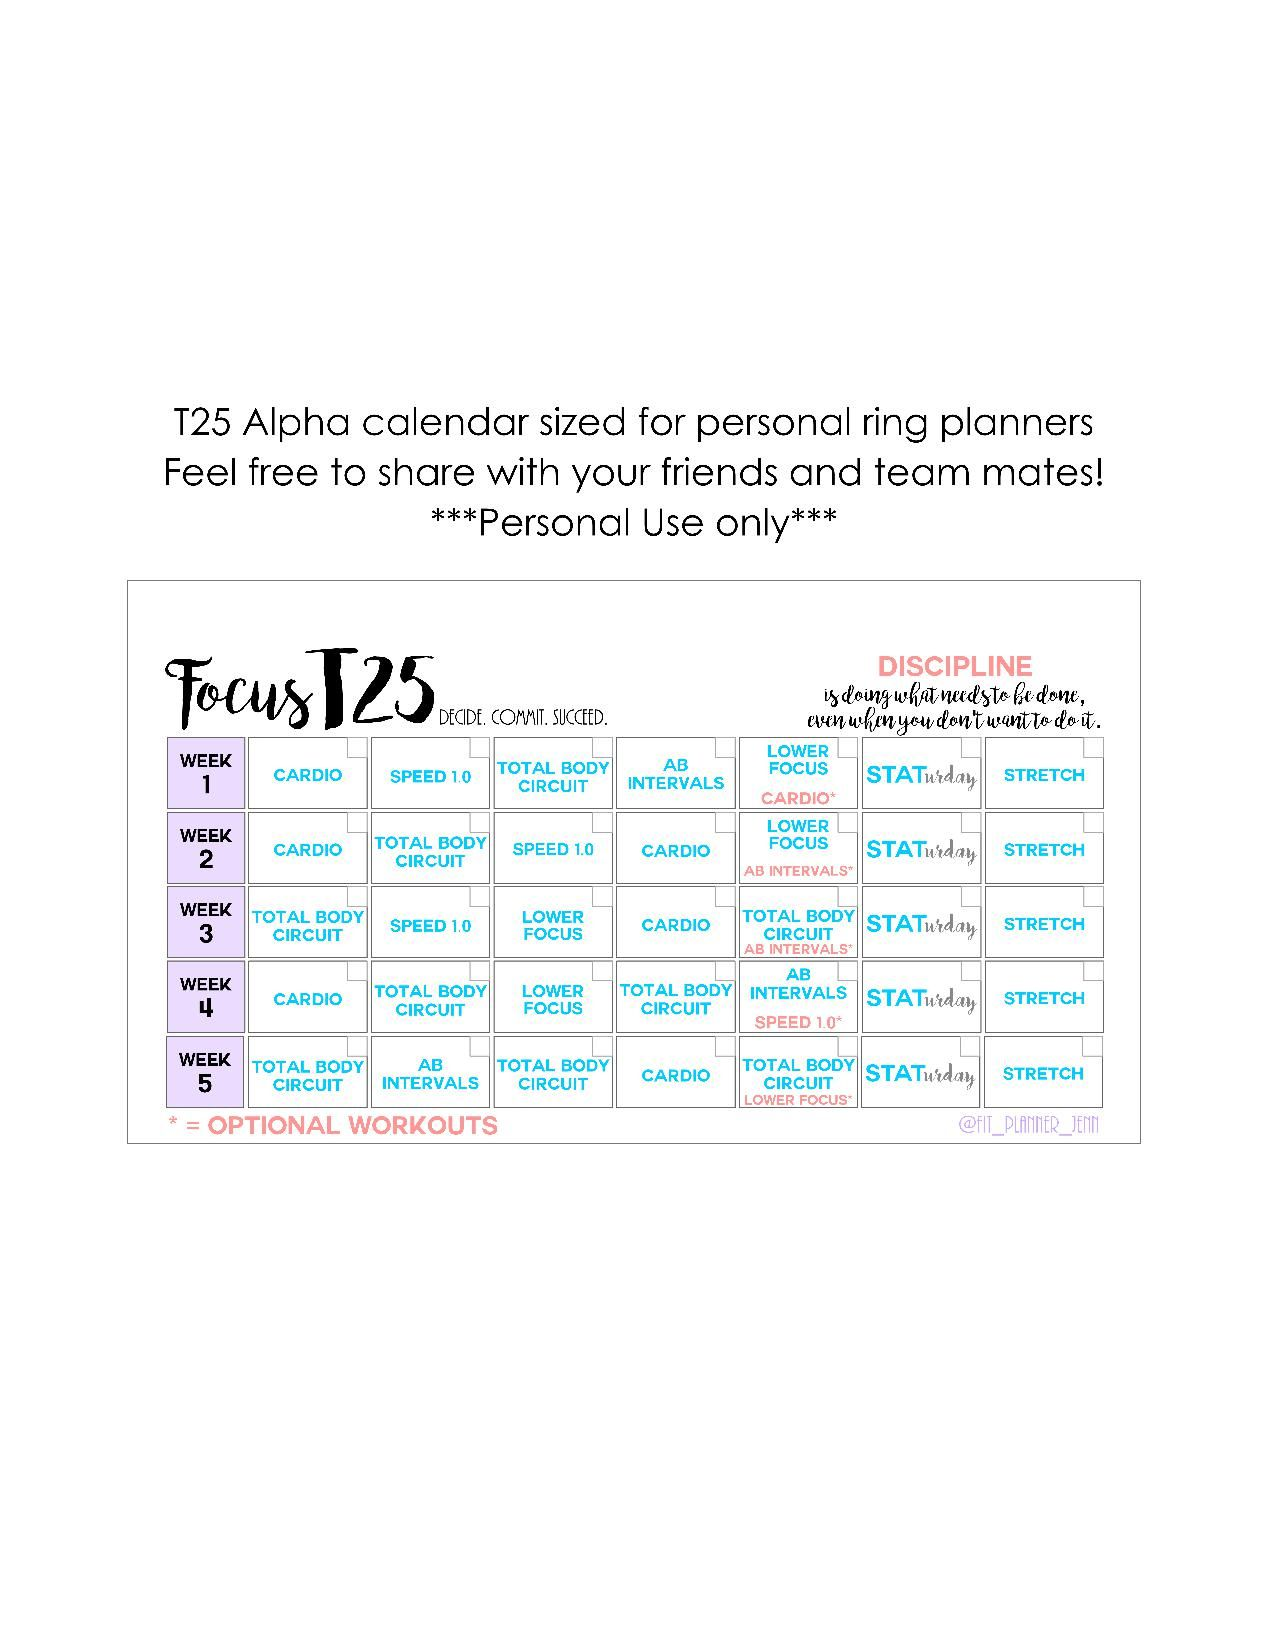 graphic relating to T25 Schedule Printable referred to as T25 Alpha calendar printable for particular person sizing ring planners